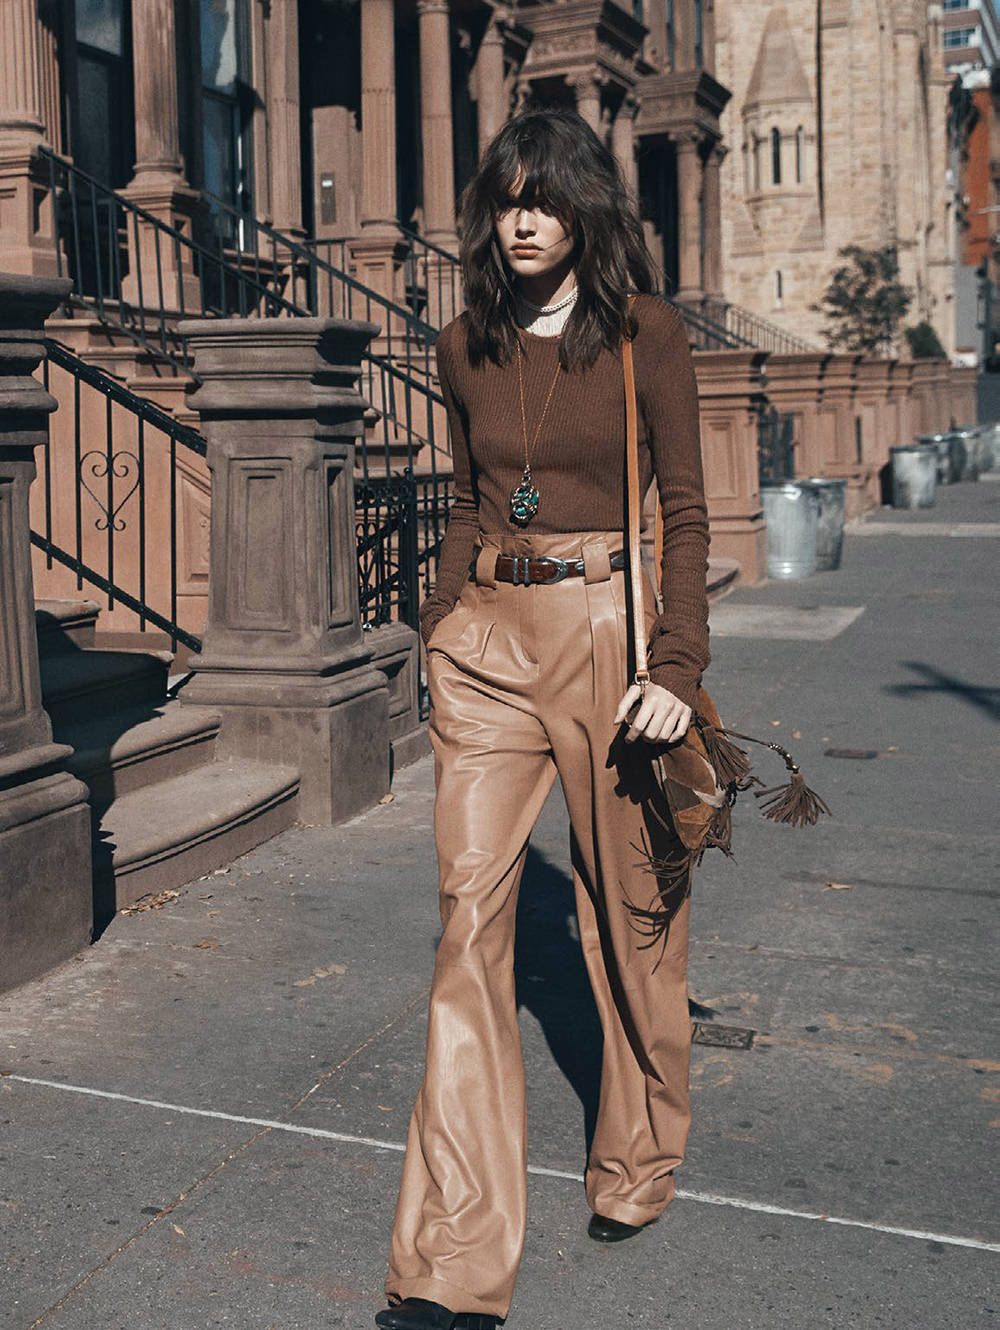 vogue paris, vogue editorial, lachlan bailey, vanessa moody, geraldine saglio, james peis, marla belt, fashion editorial, nyc fashion , street style new york,